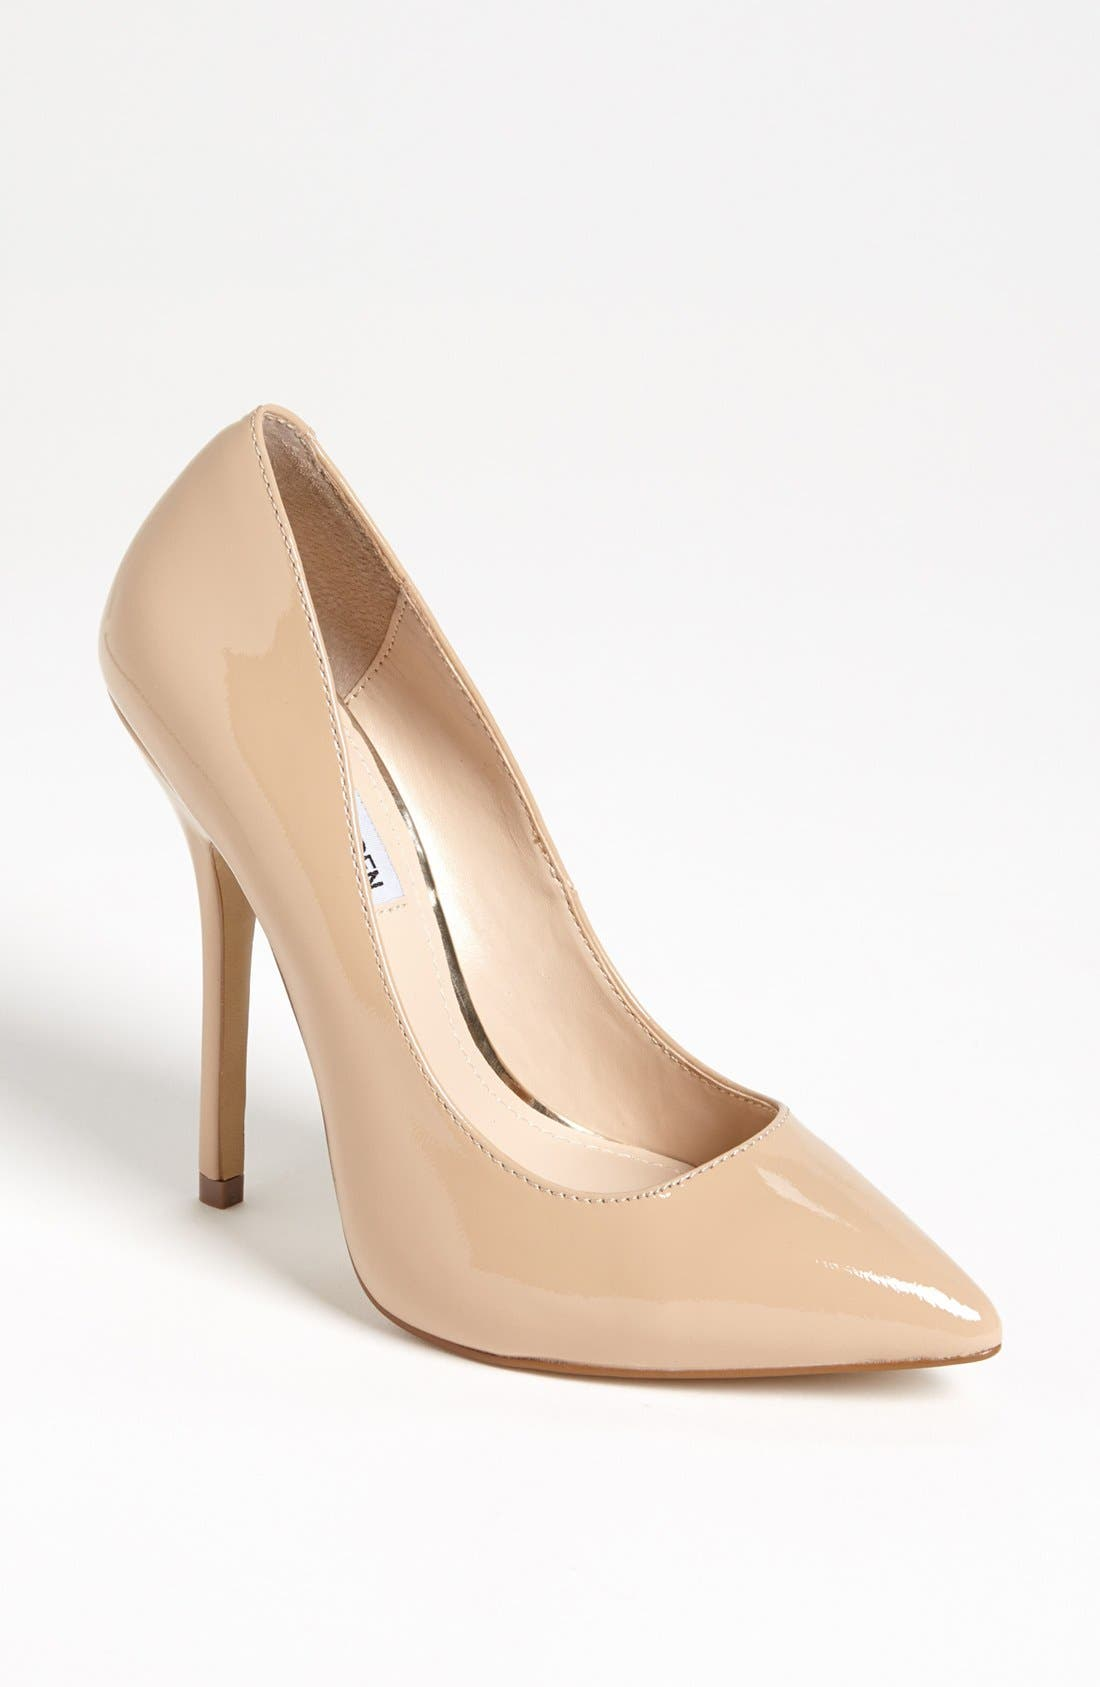 Alternate Image 1 Selected - Steve Madden 'Darrt' Pump